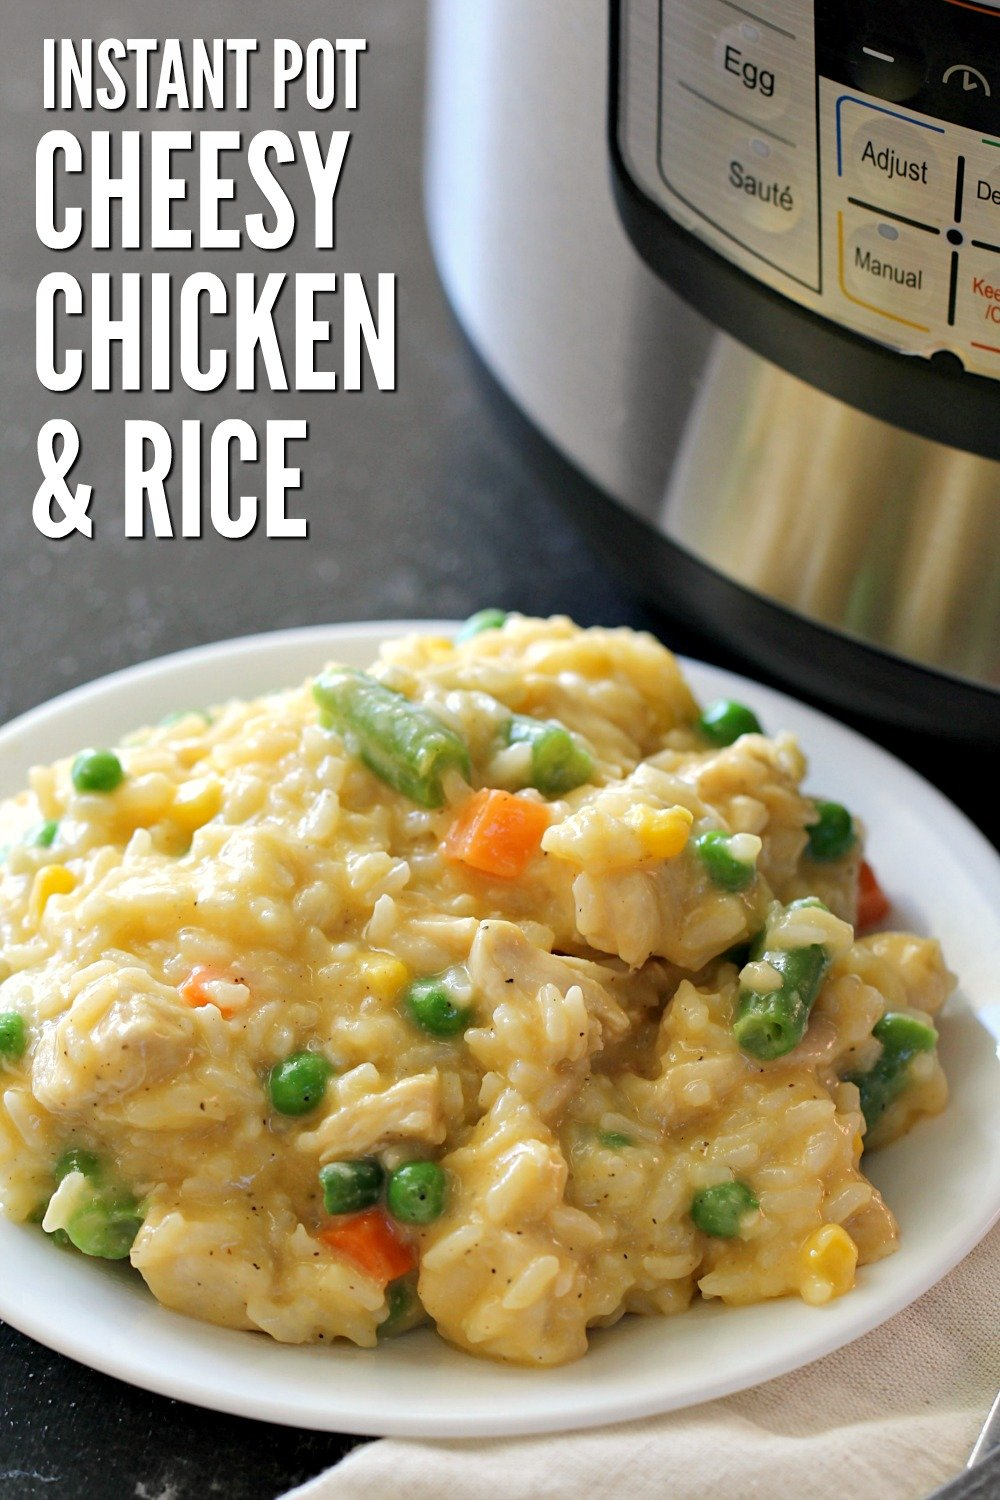 cheesy chicken and rice with mixed vegetables on a plate next to an Instant Pot